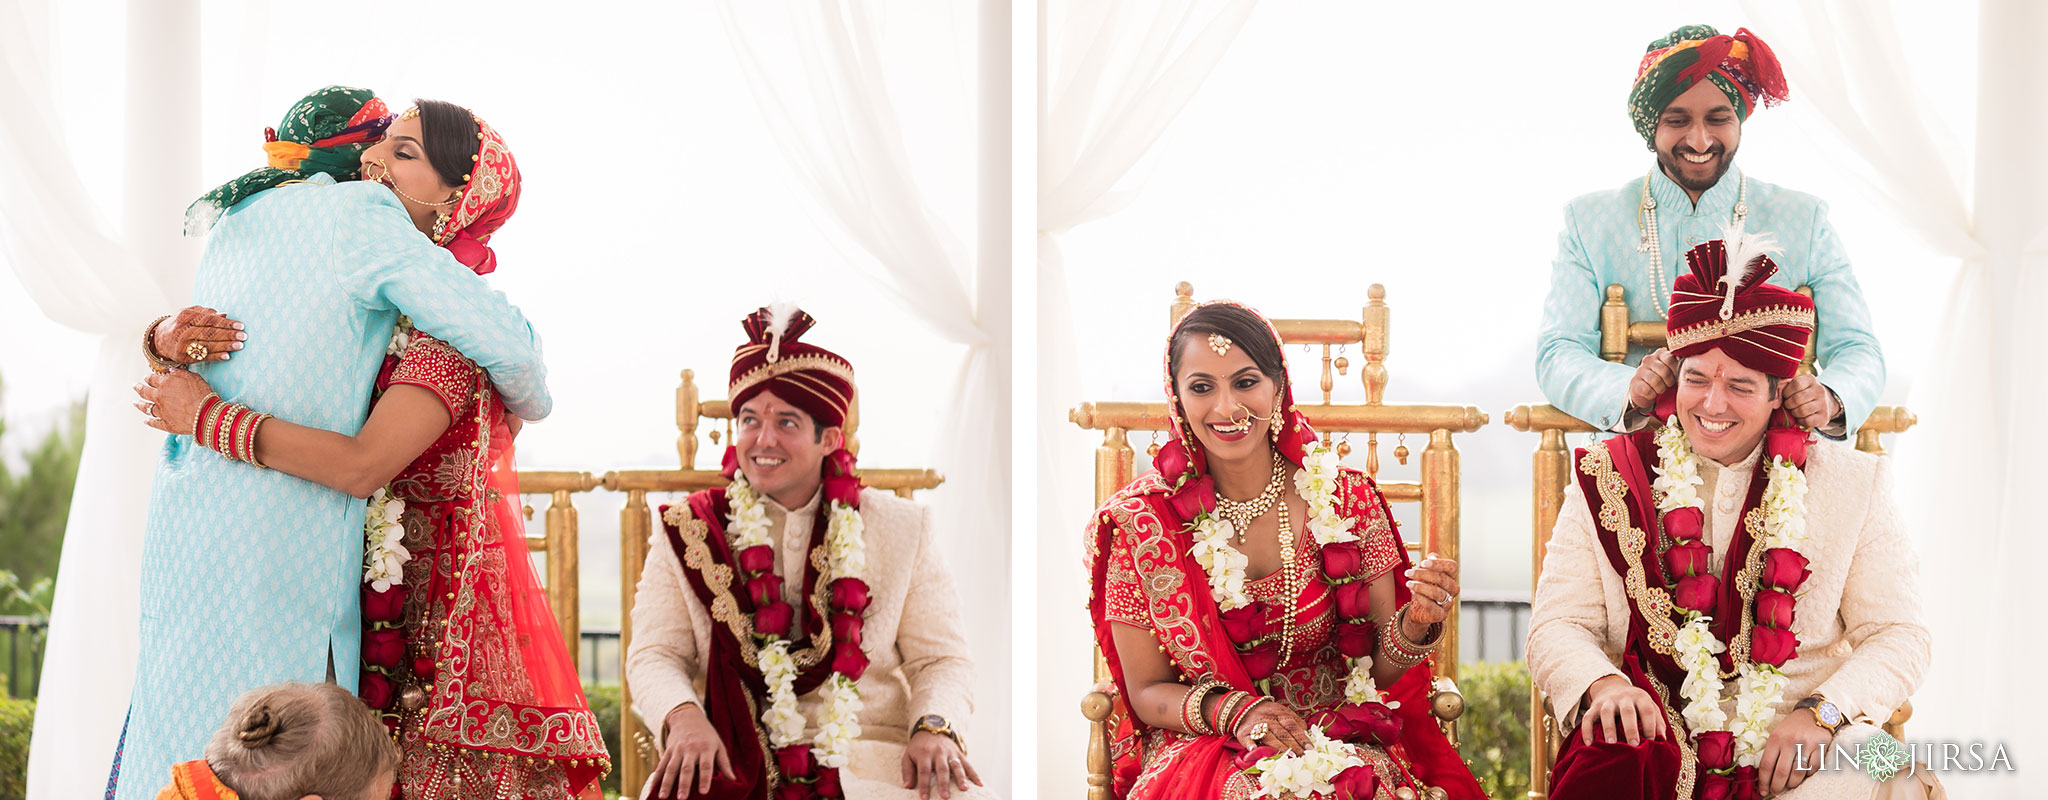 40 newport beach marriott hotel indian wedding ceremony photography